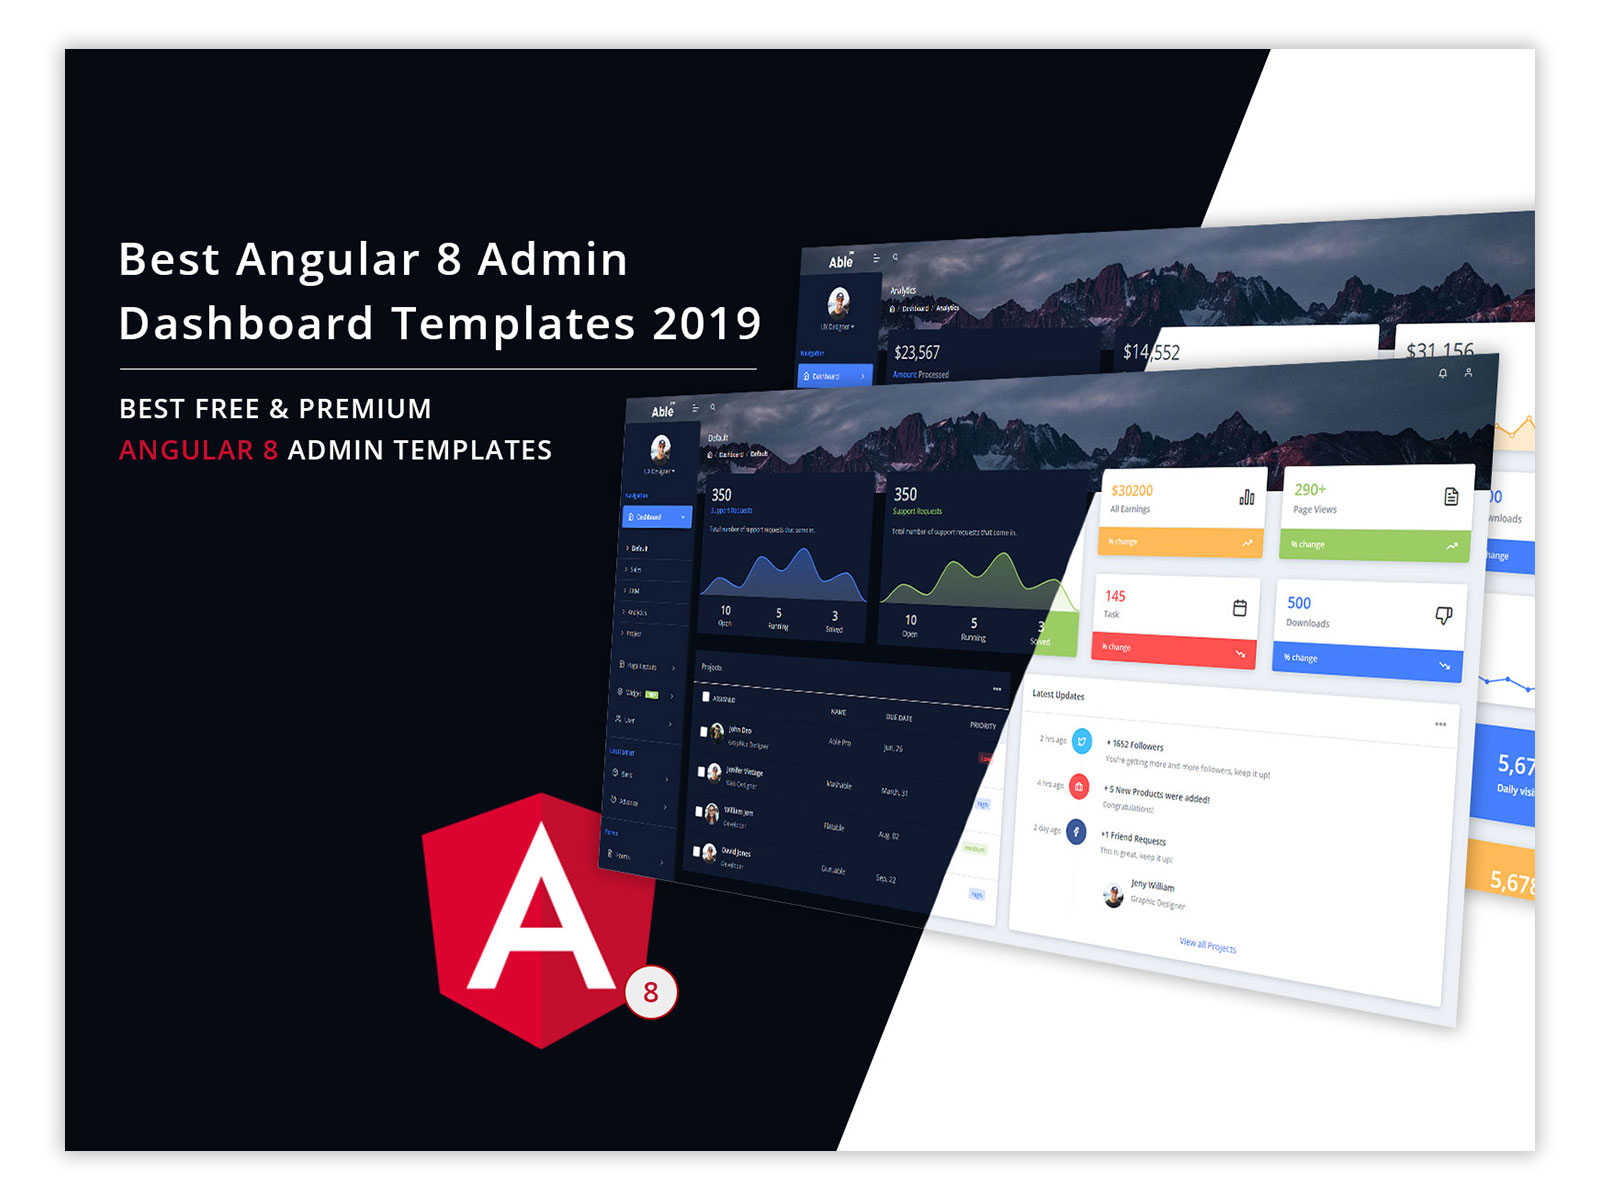 Best Angular Admin Templates